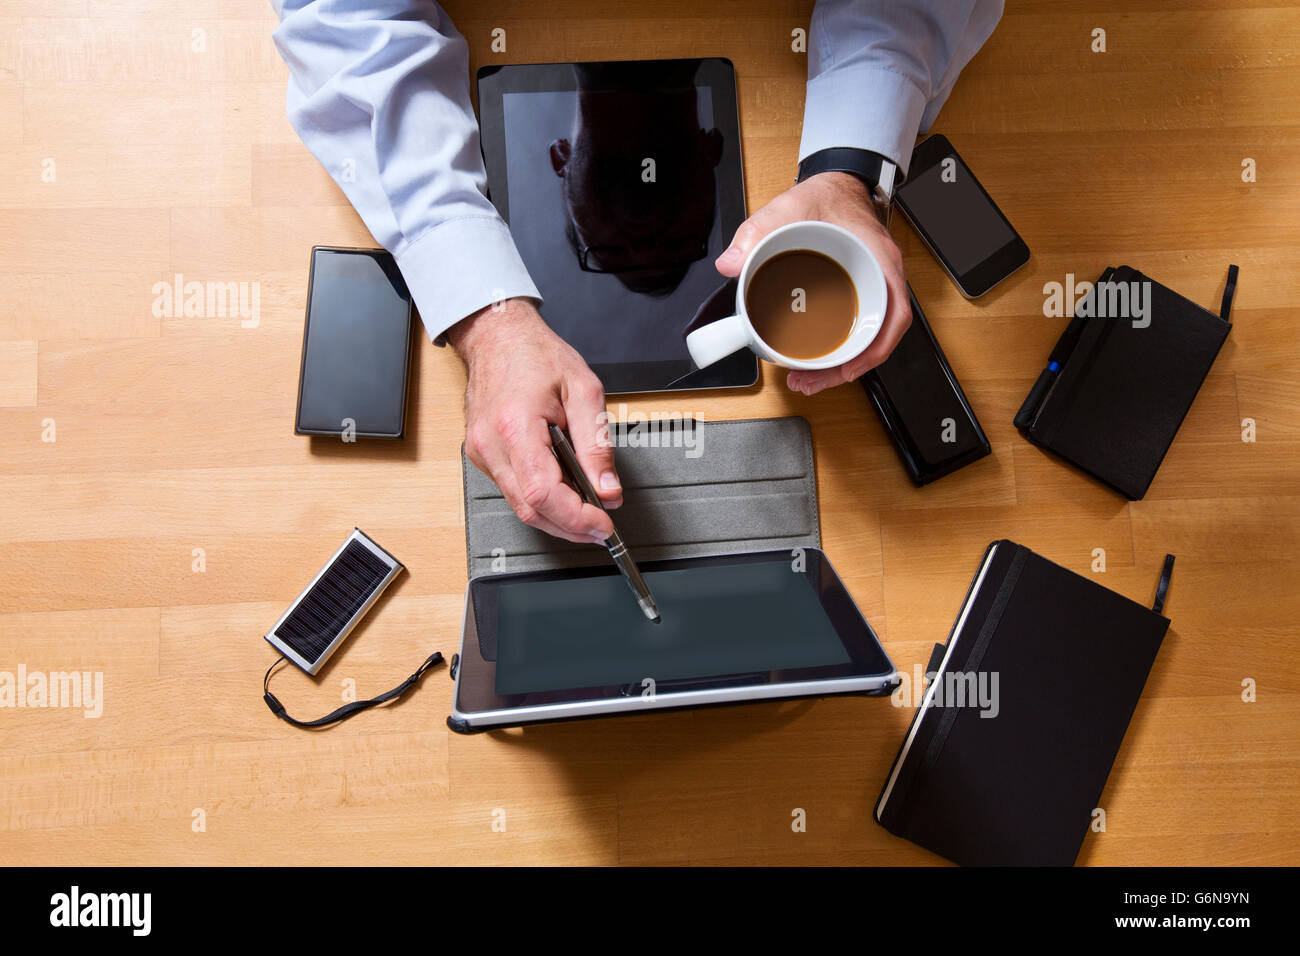 Overhead view of businessman using technology - Stock Image